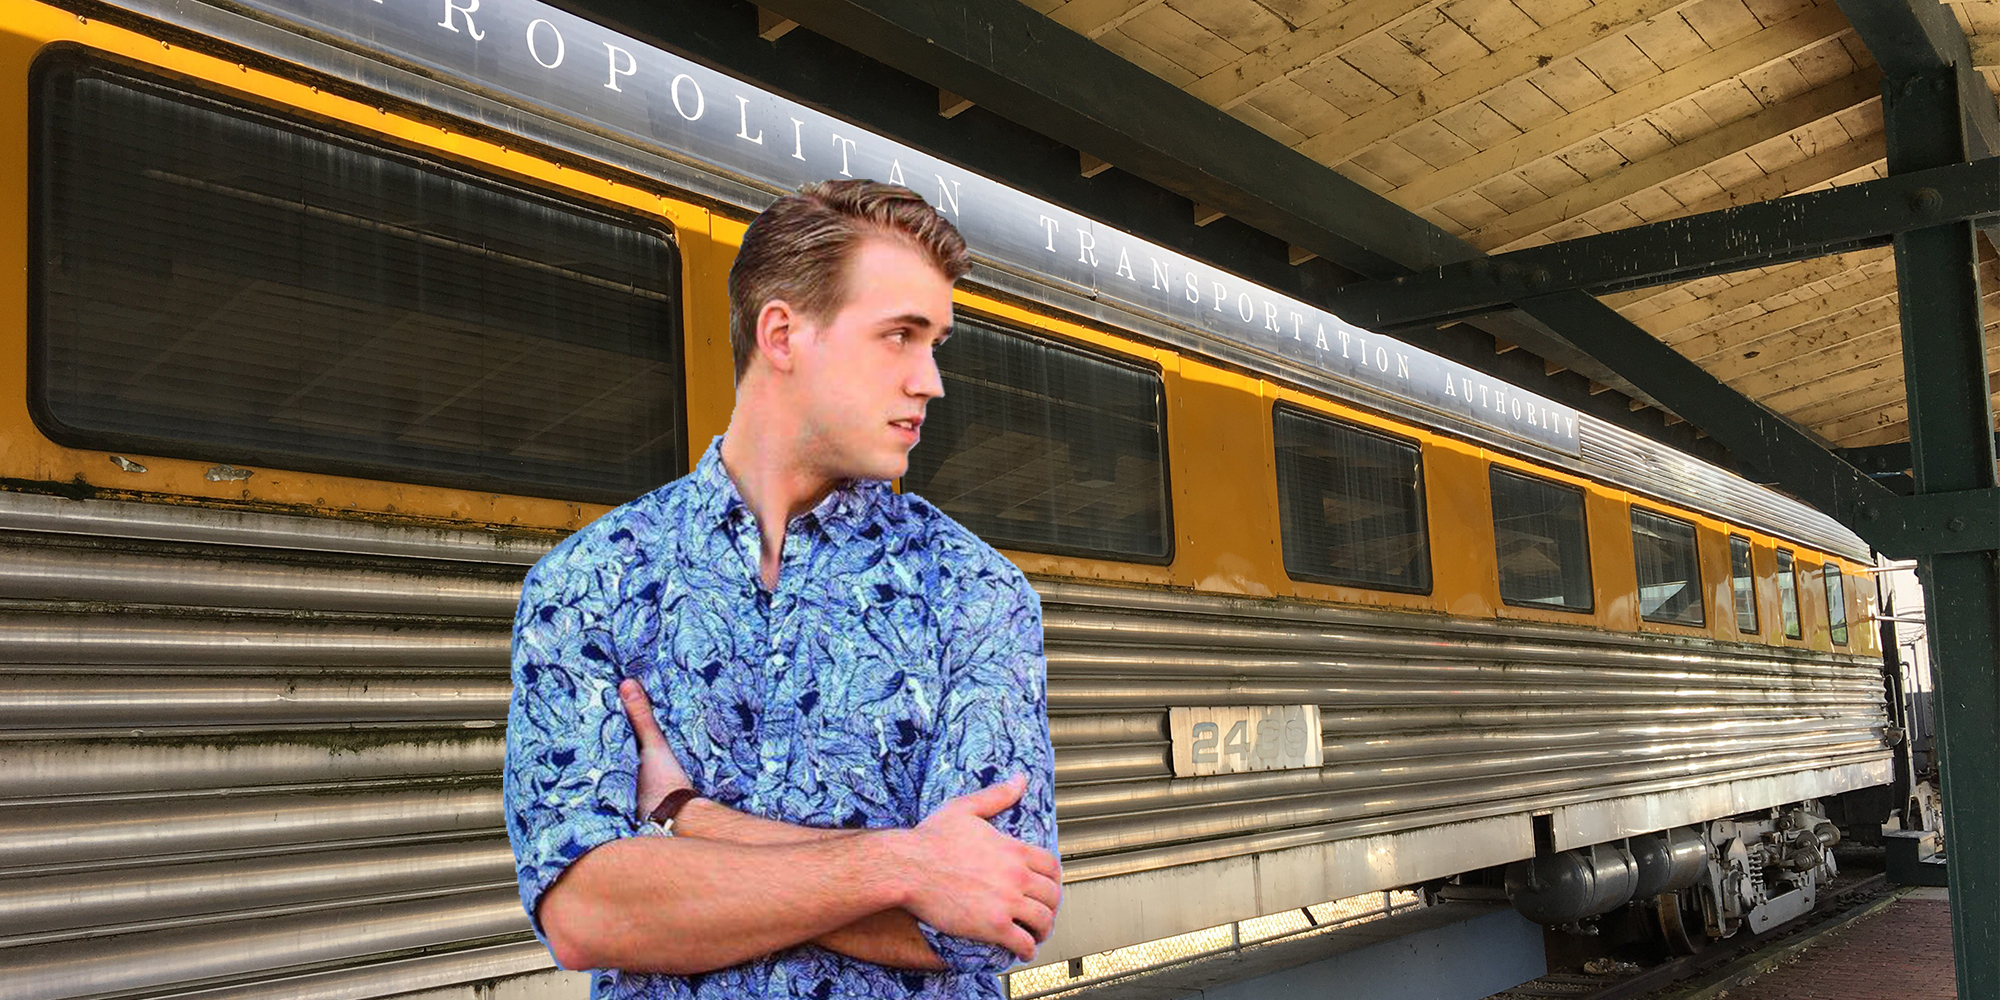 Photo of Jake Snell by  vaninipanini . Train photo and illustration by Scott Gordon.